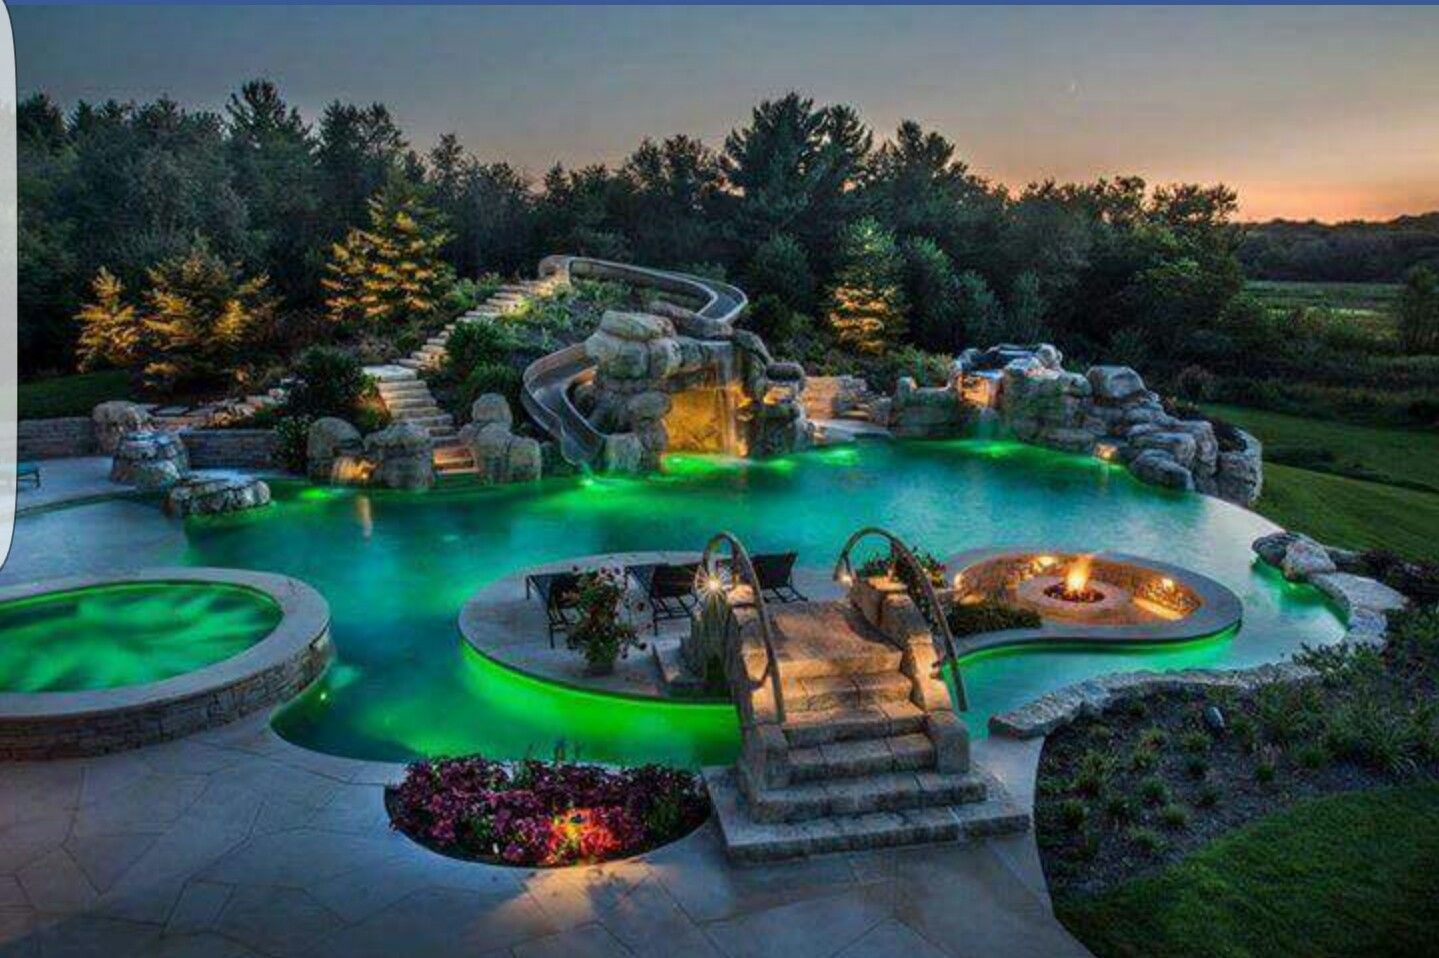 Pin by Amber Dukes on future home | Dream pools, Dream ... on Dream Backyard With Pool id=60004